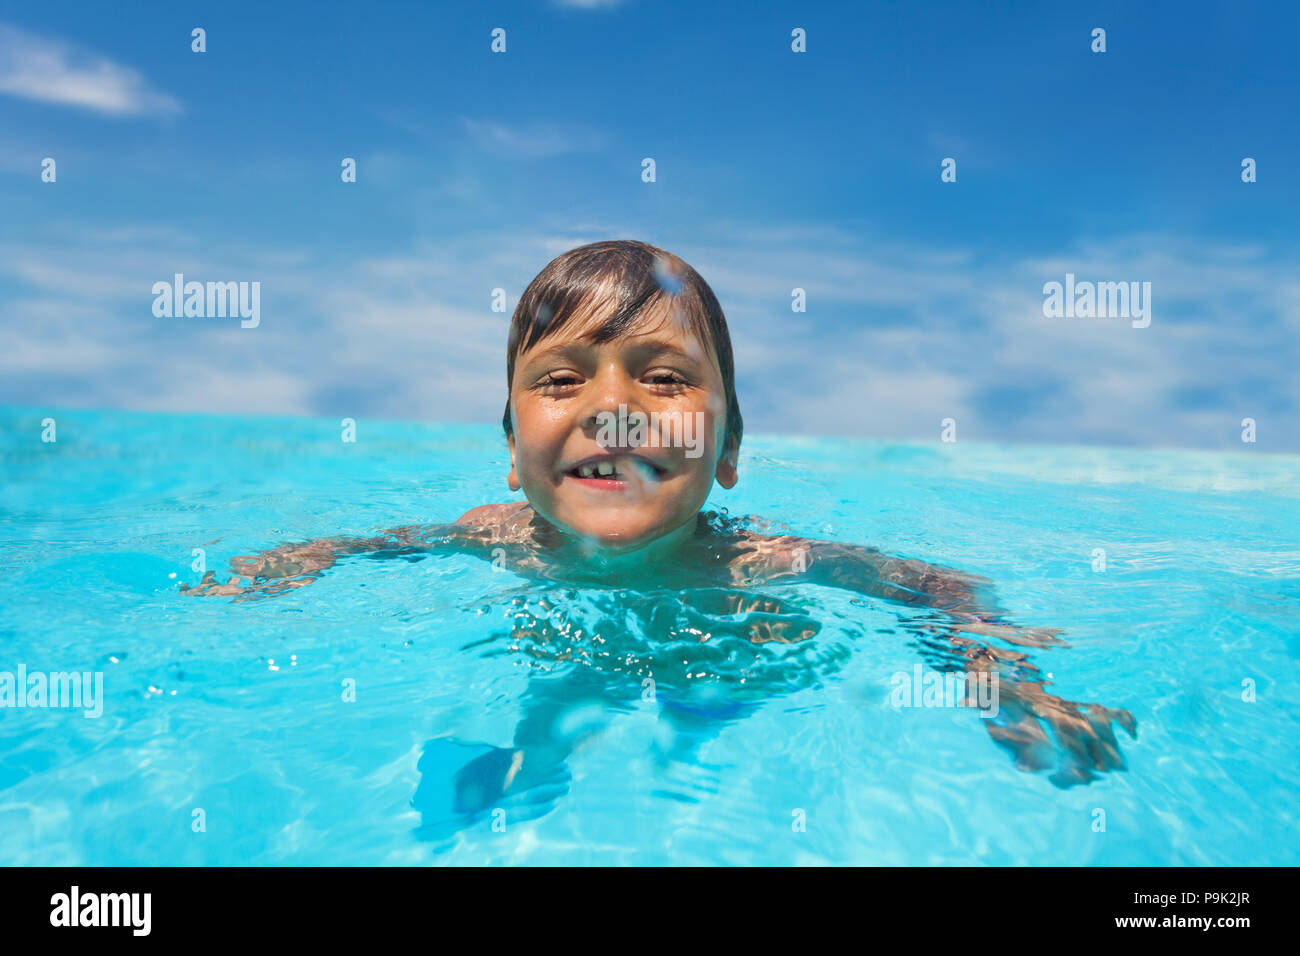 Portrait of laughing preteen boy swimming in crystal-clear water of outdoor pool - Stock Image